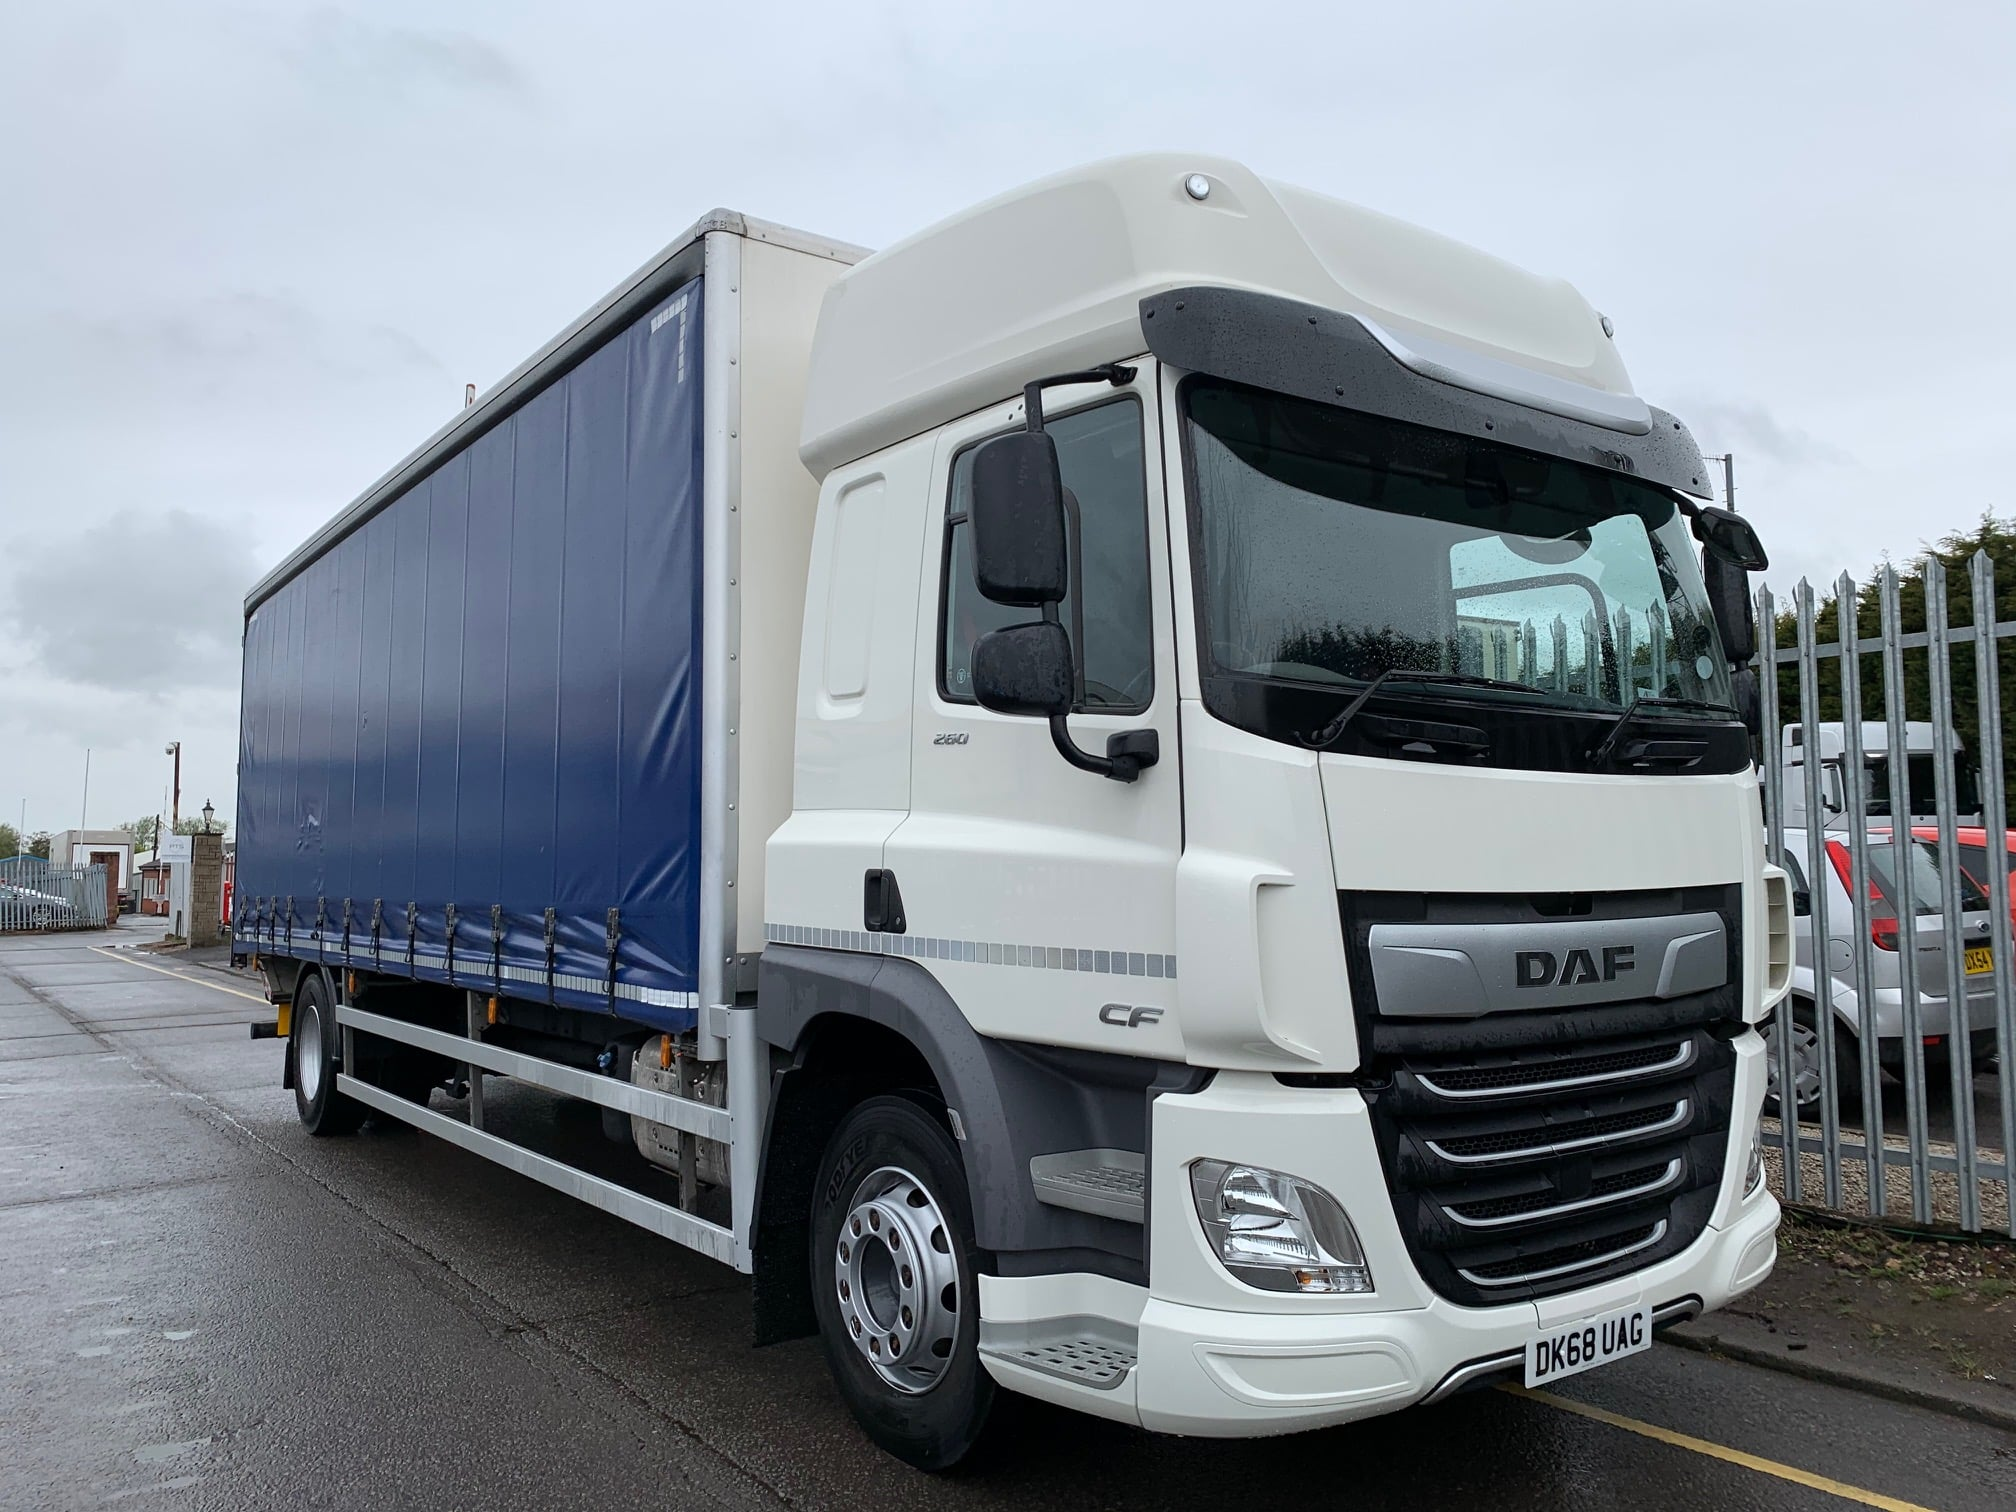 2018 DAF CF Curtainsider. 18 Tonne, 260bhp, Euro 6, Automatic Gearbox, 6.9m Wheelbase, Space Single Sleeper Cab, Anteo Tuckunder Tailift (1500kg Capacity), Barn Doors, Internal Straps, Cruise Control, Air Con, LOW MILEAGE 37,241km, Warranty Available.